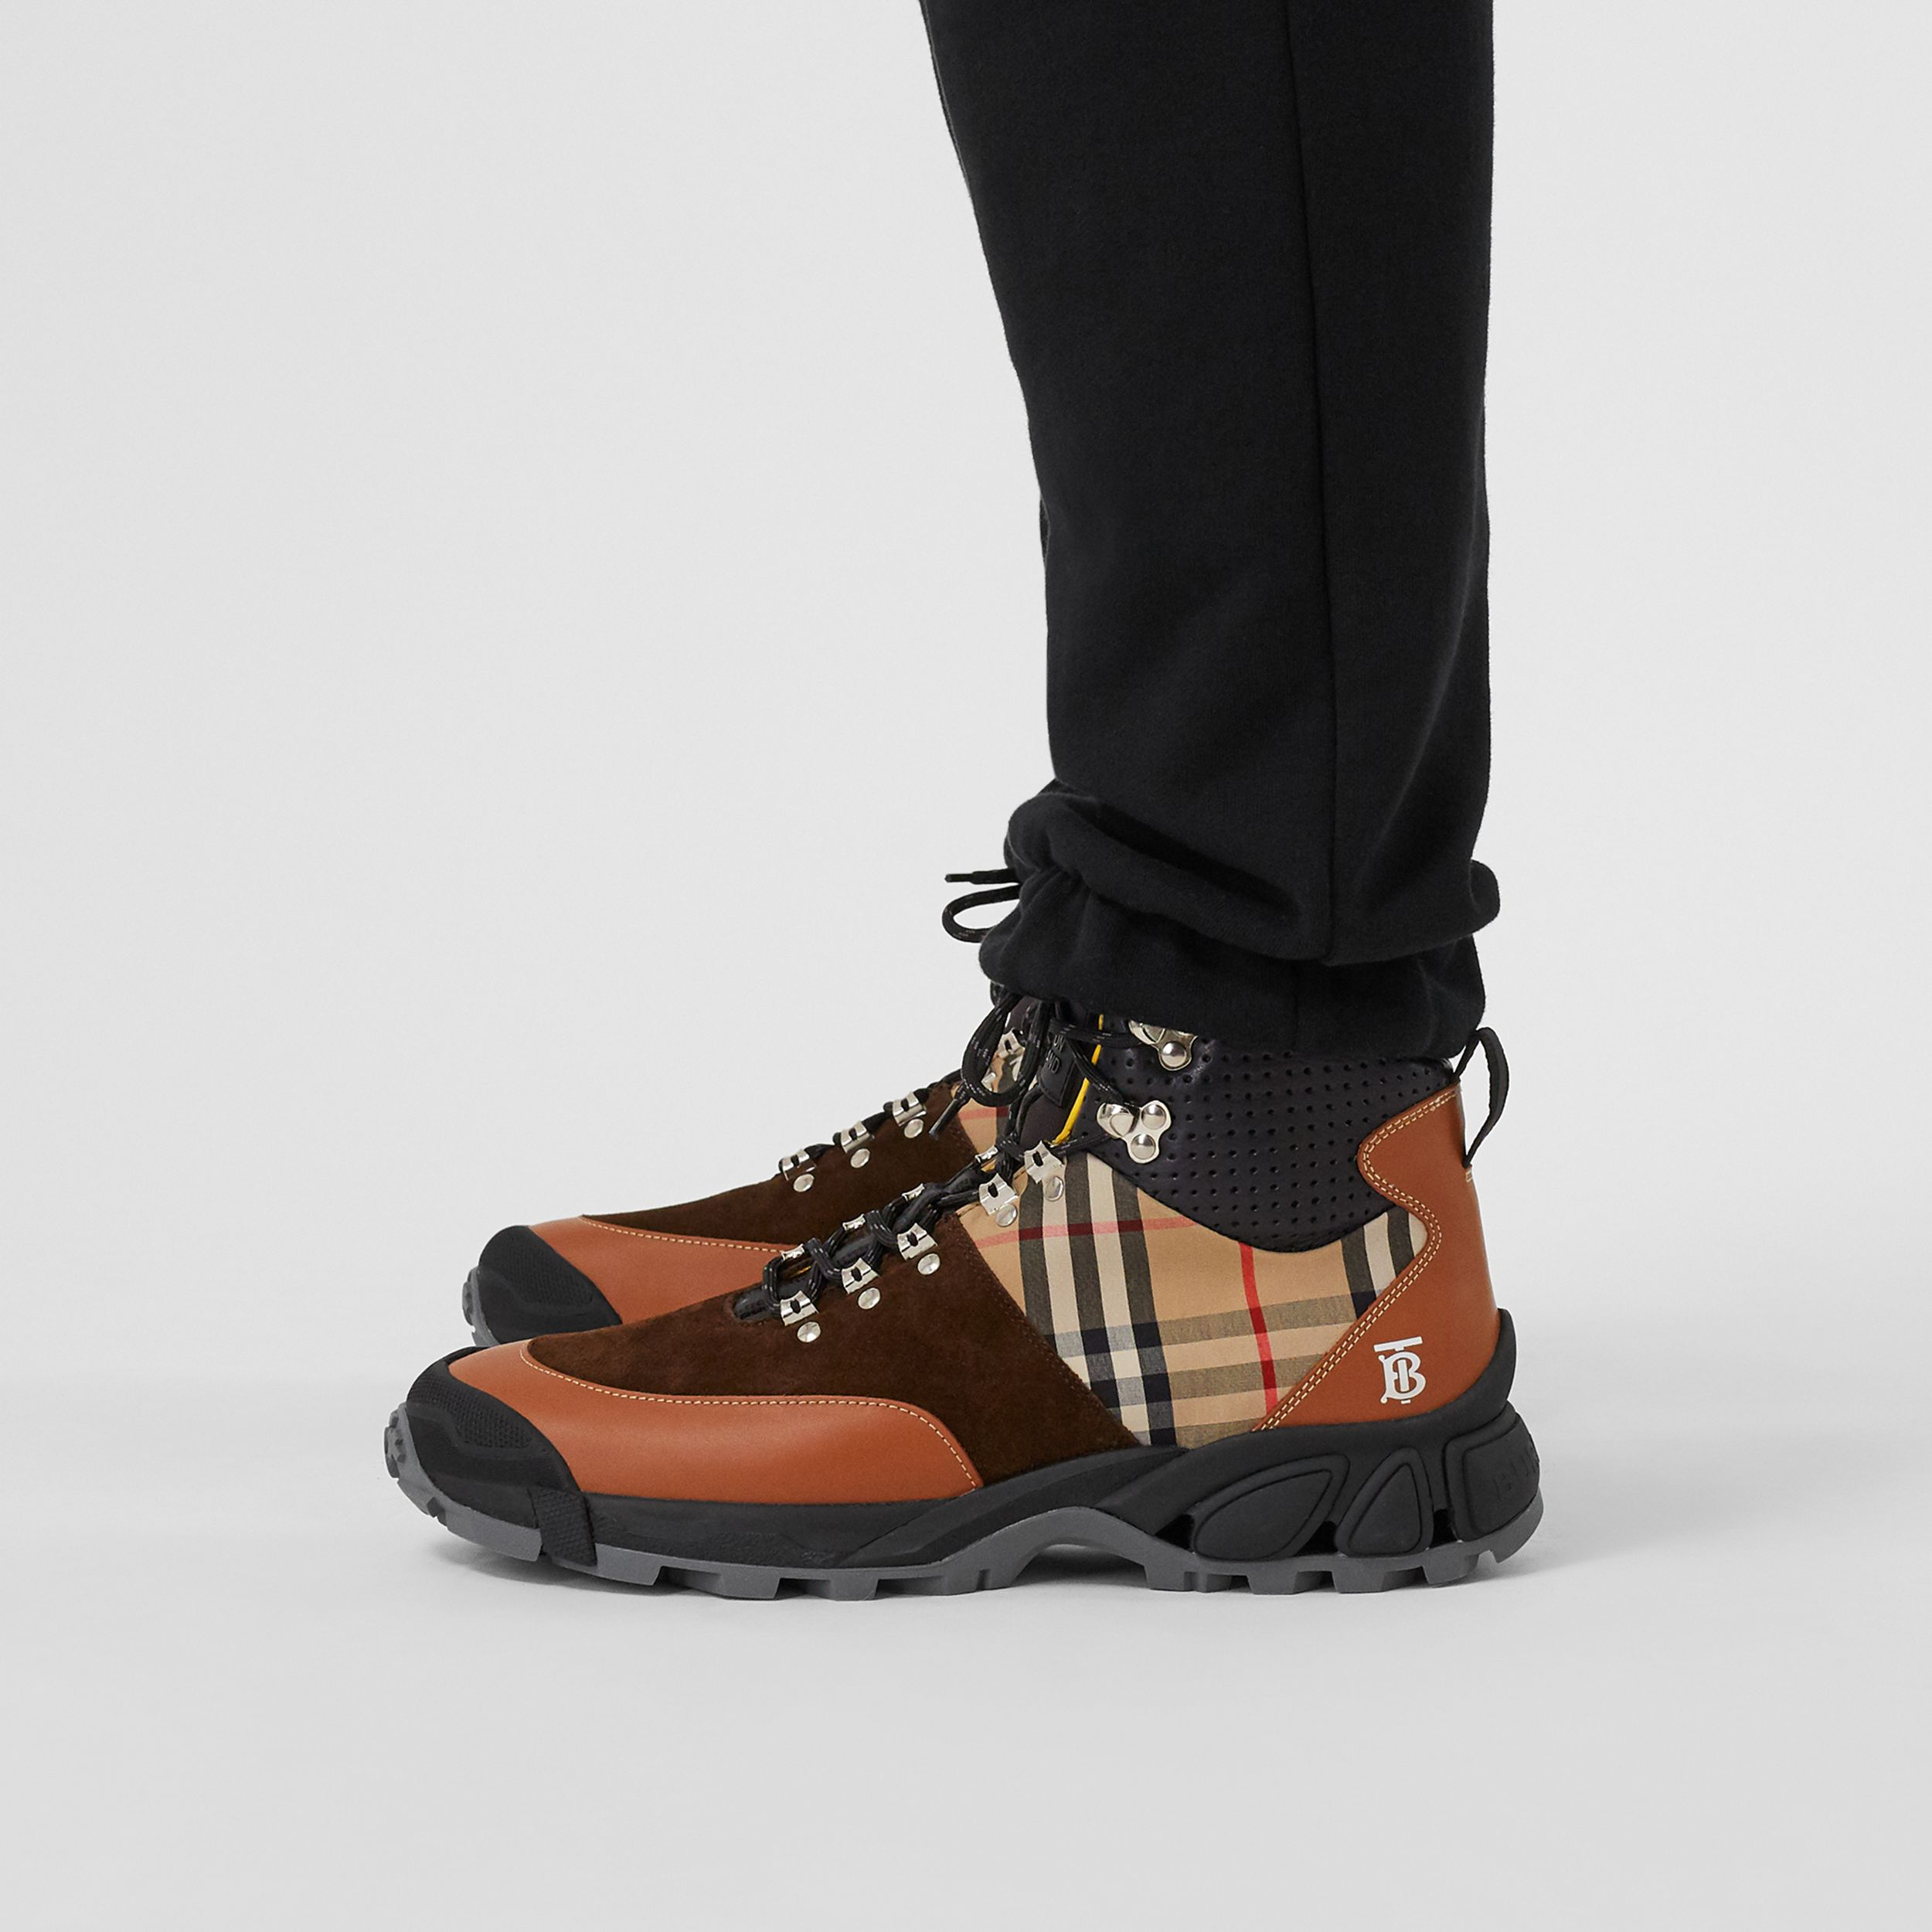 Leather, Vintage Check Cotton and Suede Tor Boots in Tan Mix - Men | Burberry Australia - 3